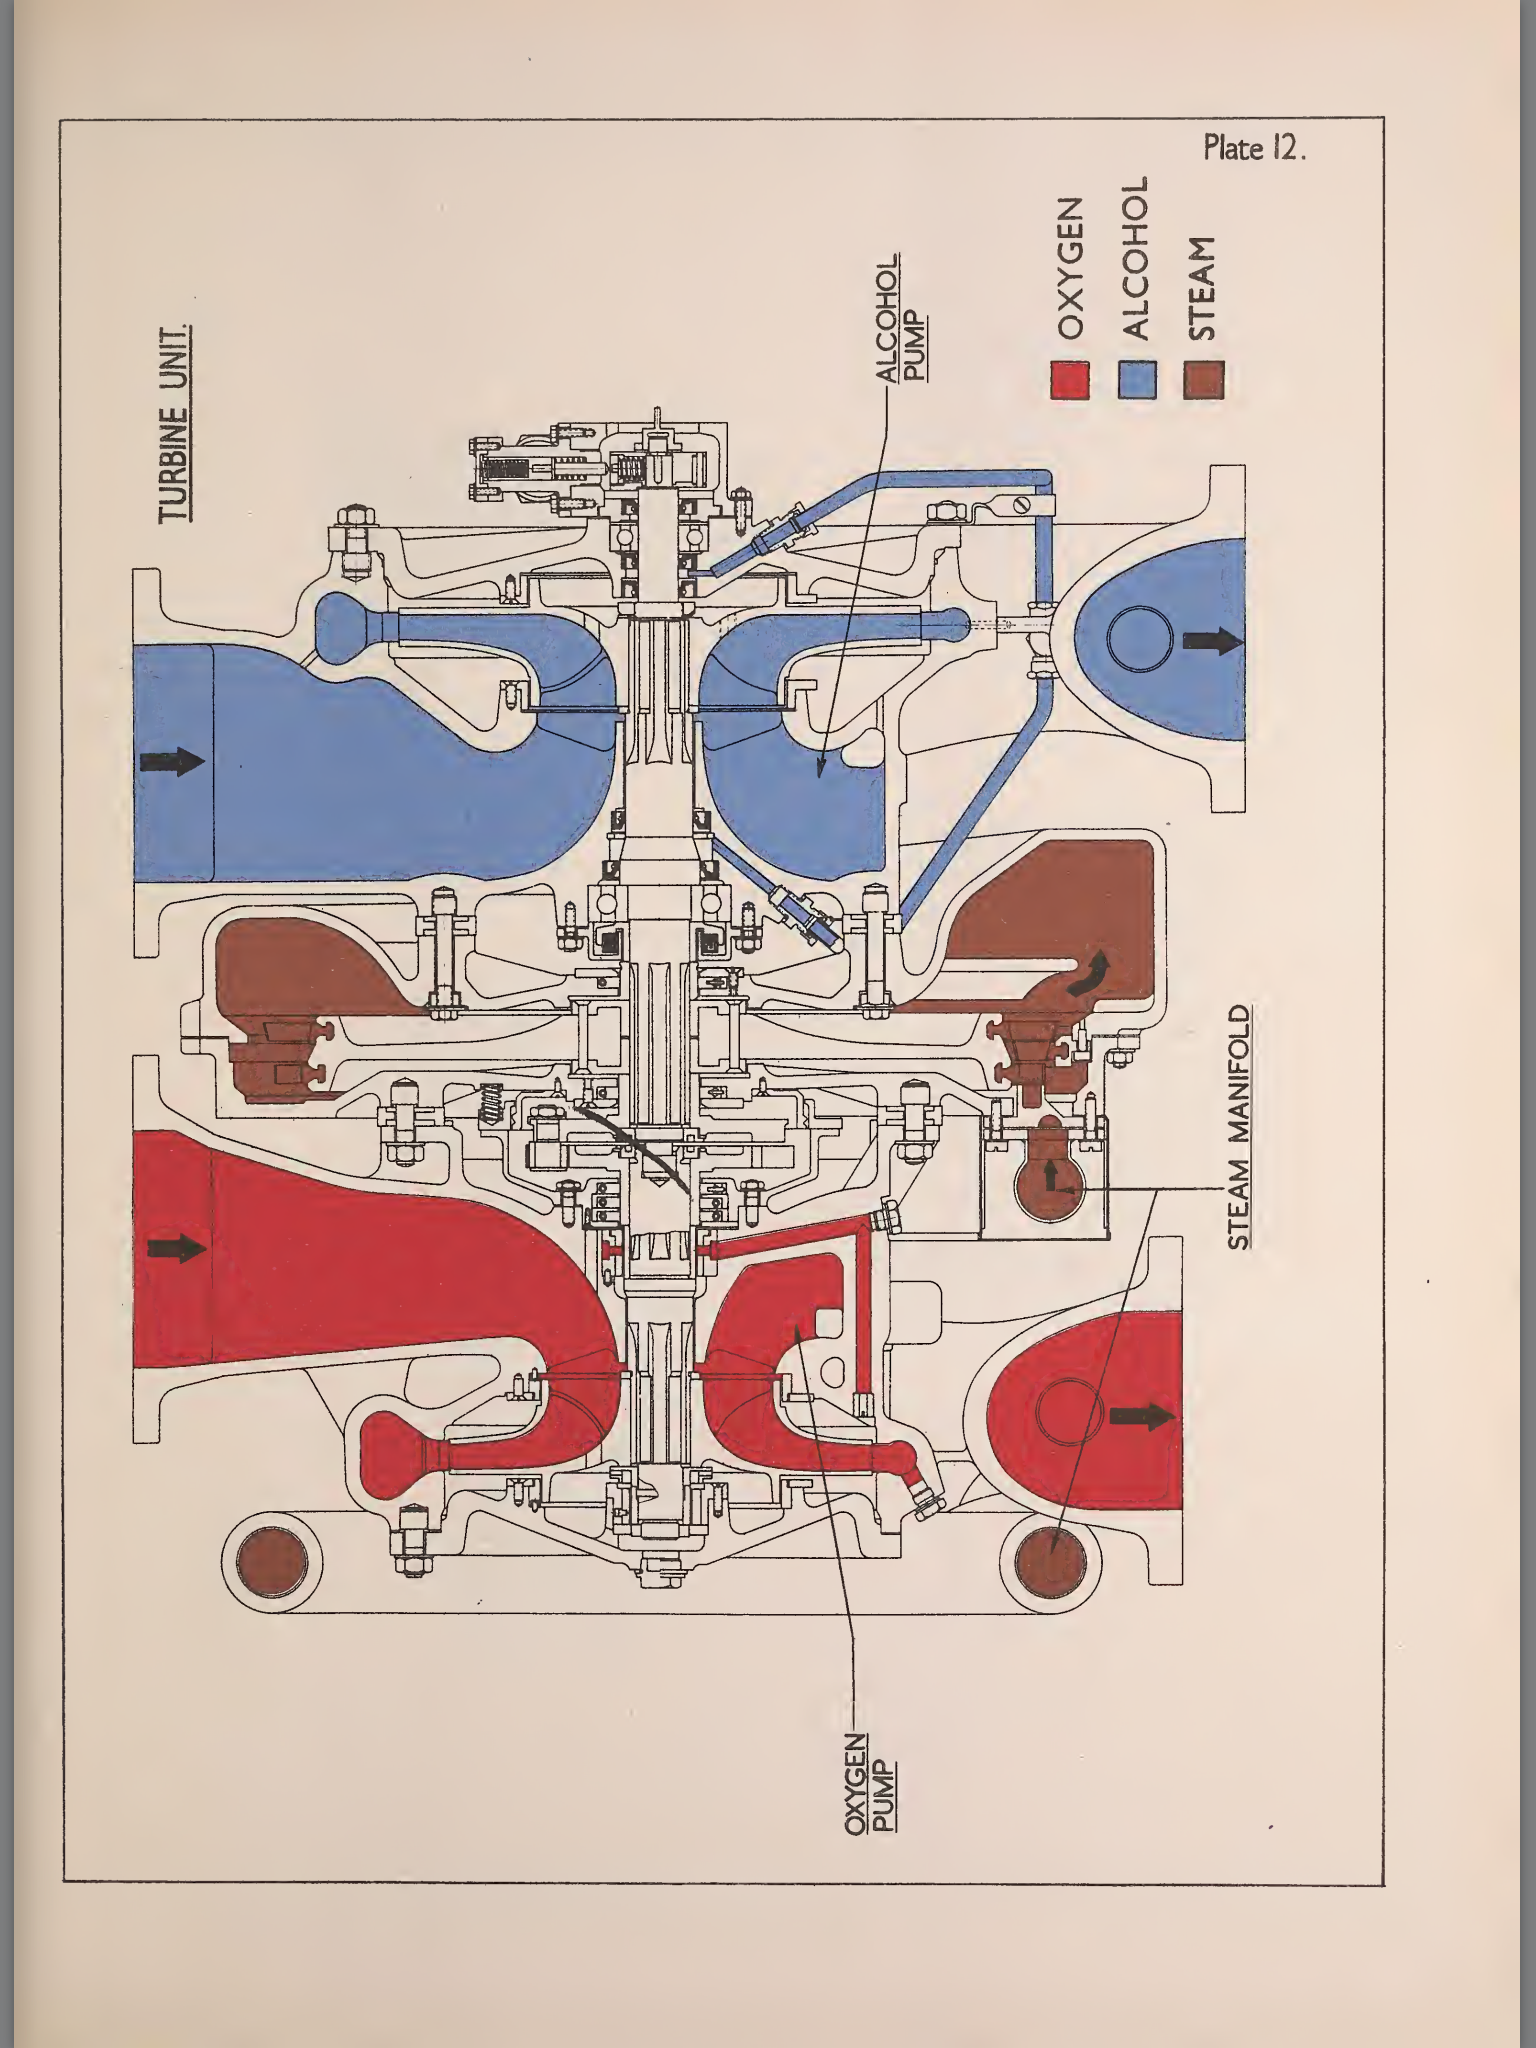 v-2 rocket turbopump diagram rocket engine, jet engine, gas turbine,  aerospace